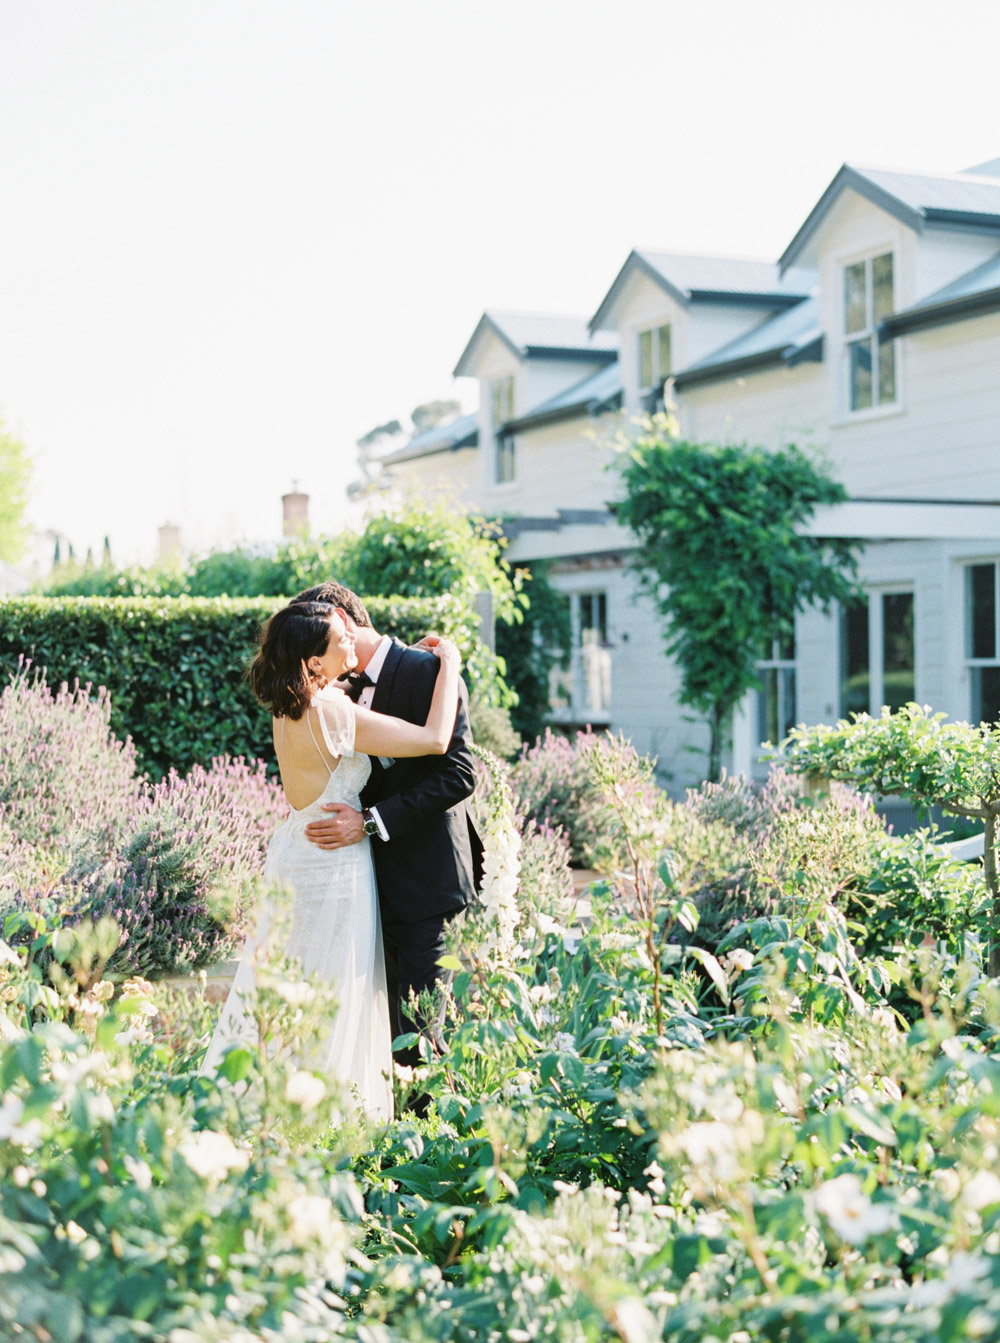 Bowral Wedding Photography - Southern highlands Wedding Photographer on Fine Art Film By Sheri McMahon-00343